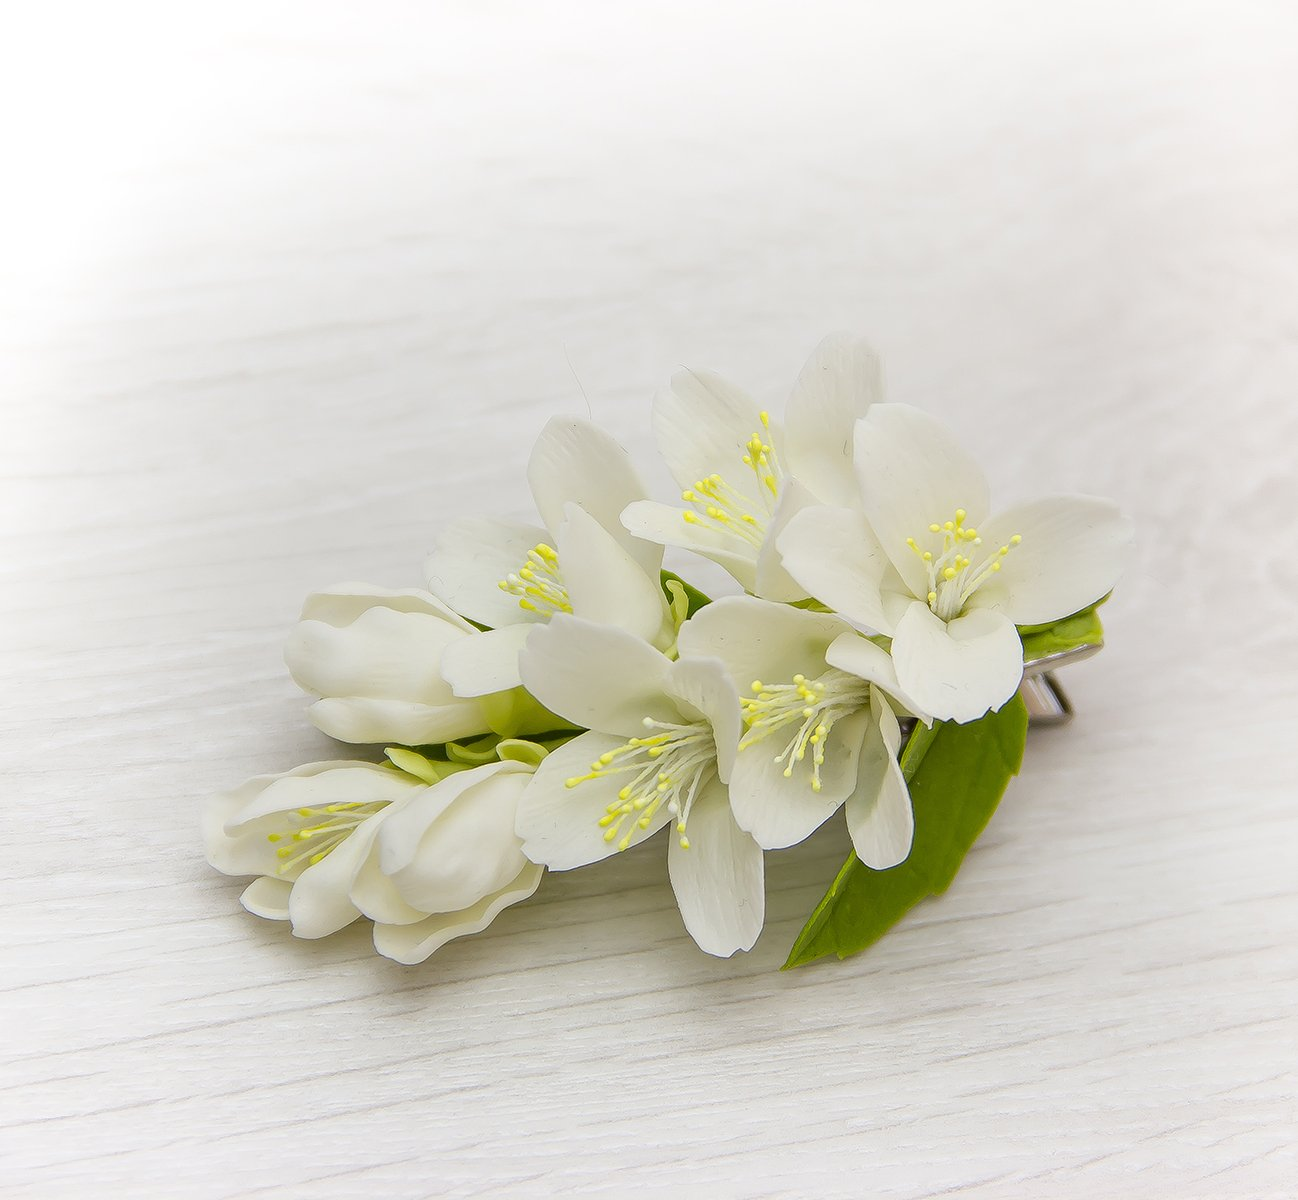 Artificial jasmine flowers for hair image collections flower amazon wedding white hair clip jasmine flower hair clip amazon wedding white hair clip jasmine flower izmirmasajfo